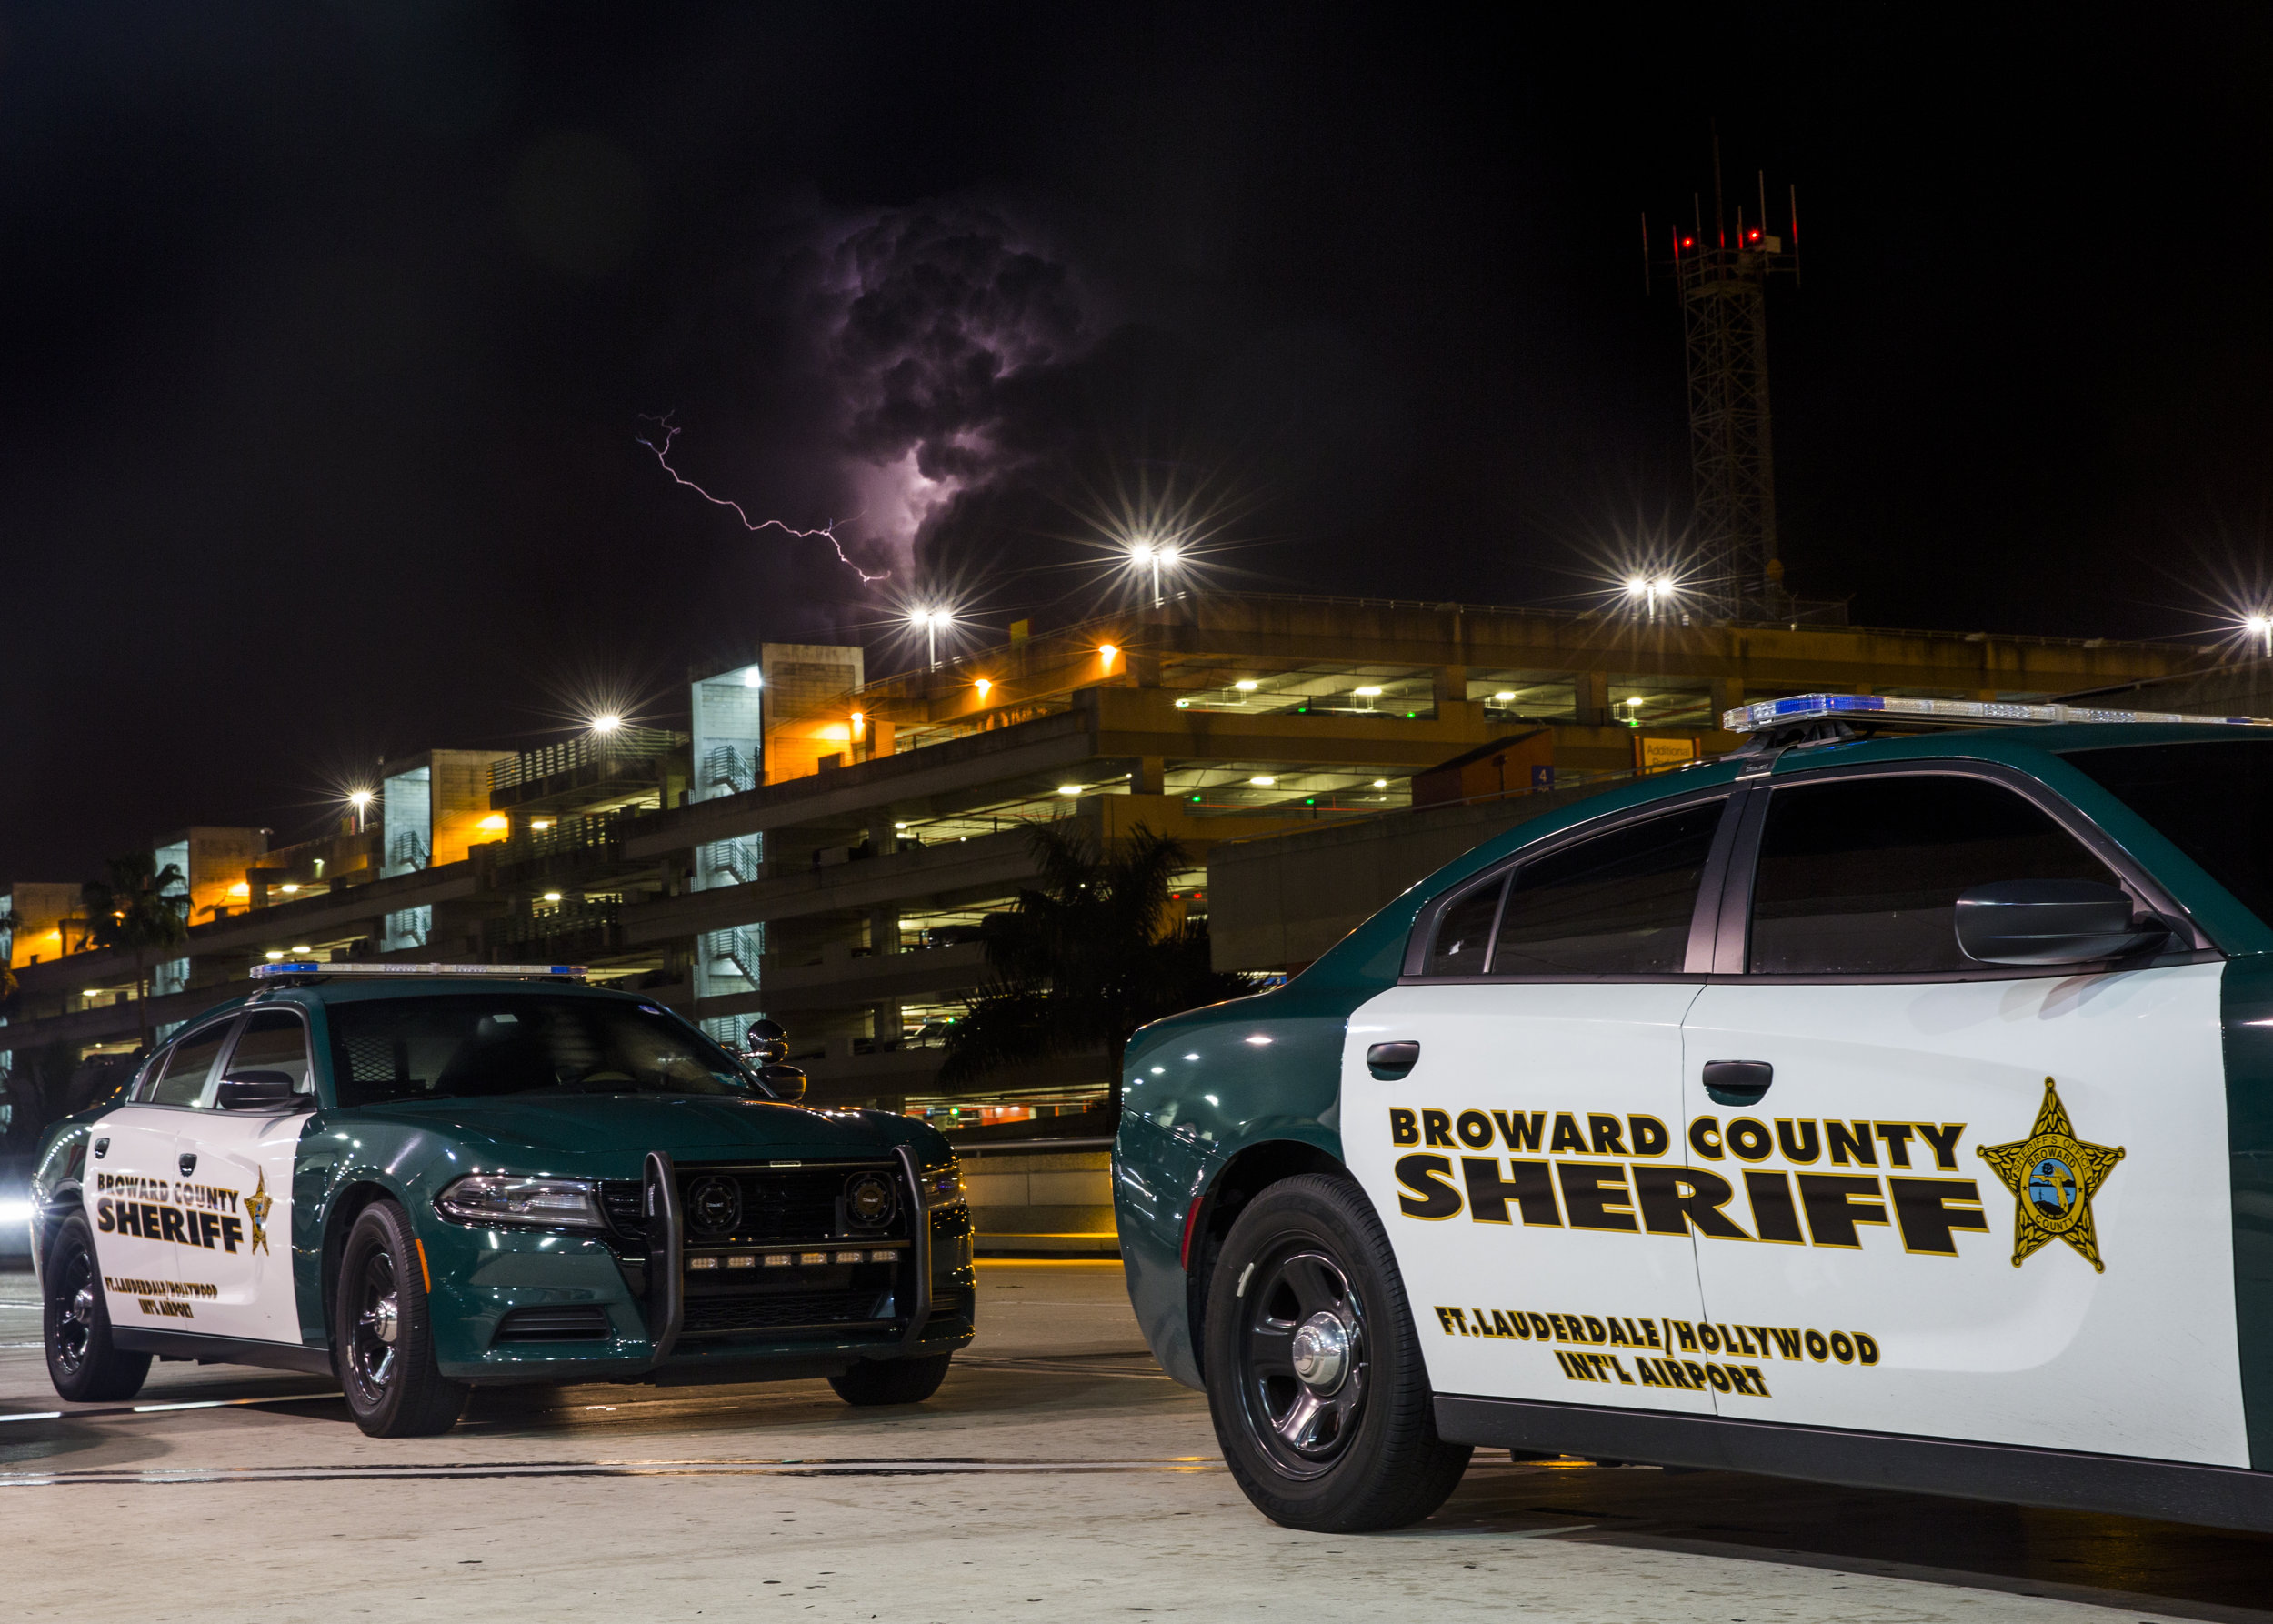 Broward County Sheriff vehicles park outside of terminal 2 at the Fort Lauderdale - Hollywood International Airport  in Fort Lauderdale, Fla. on Saturday, January 7, 2016.